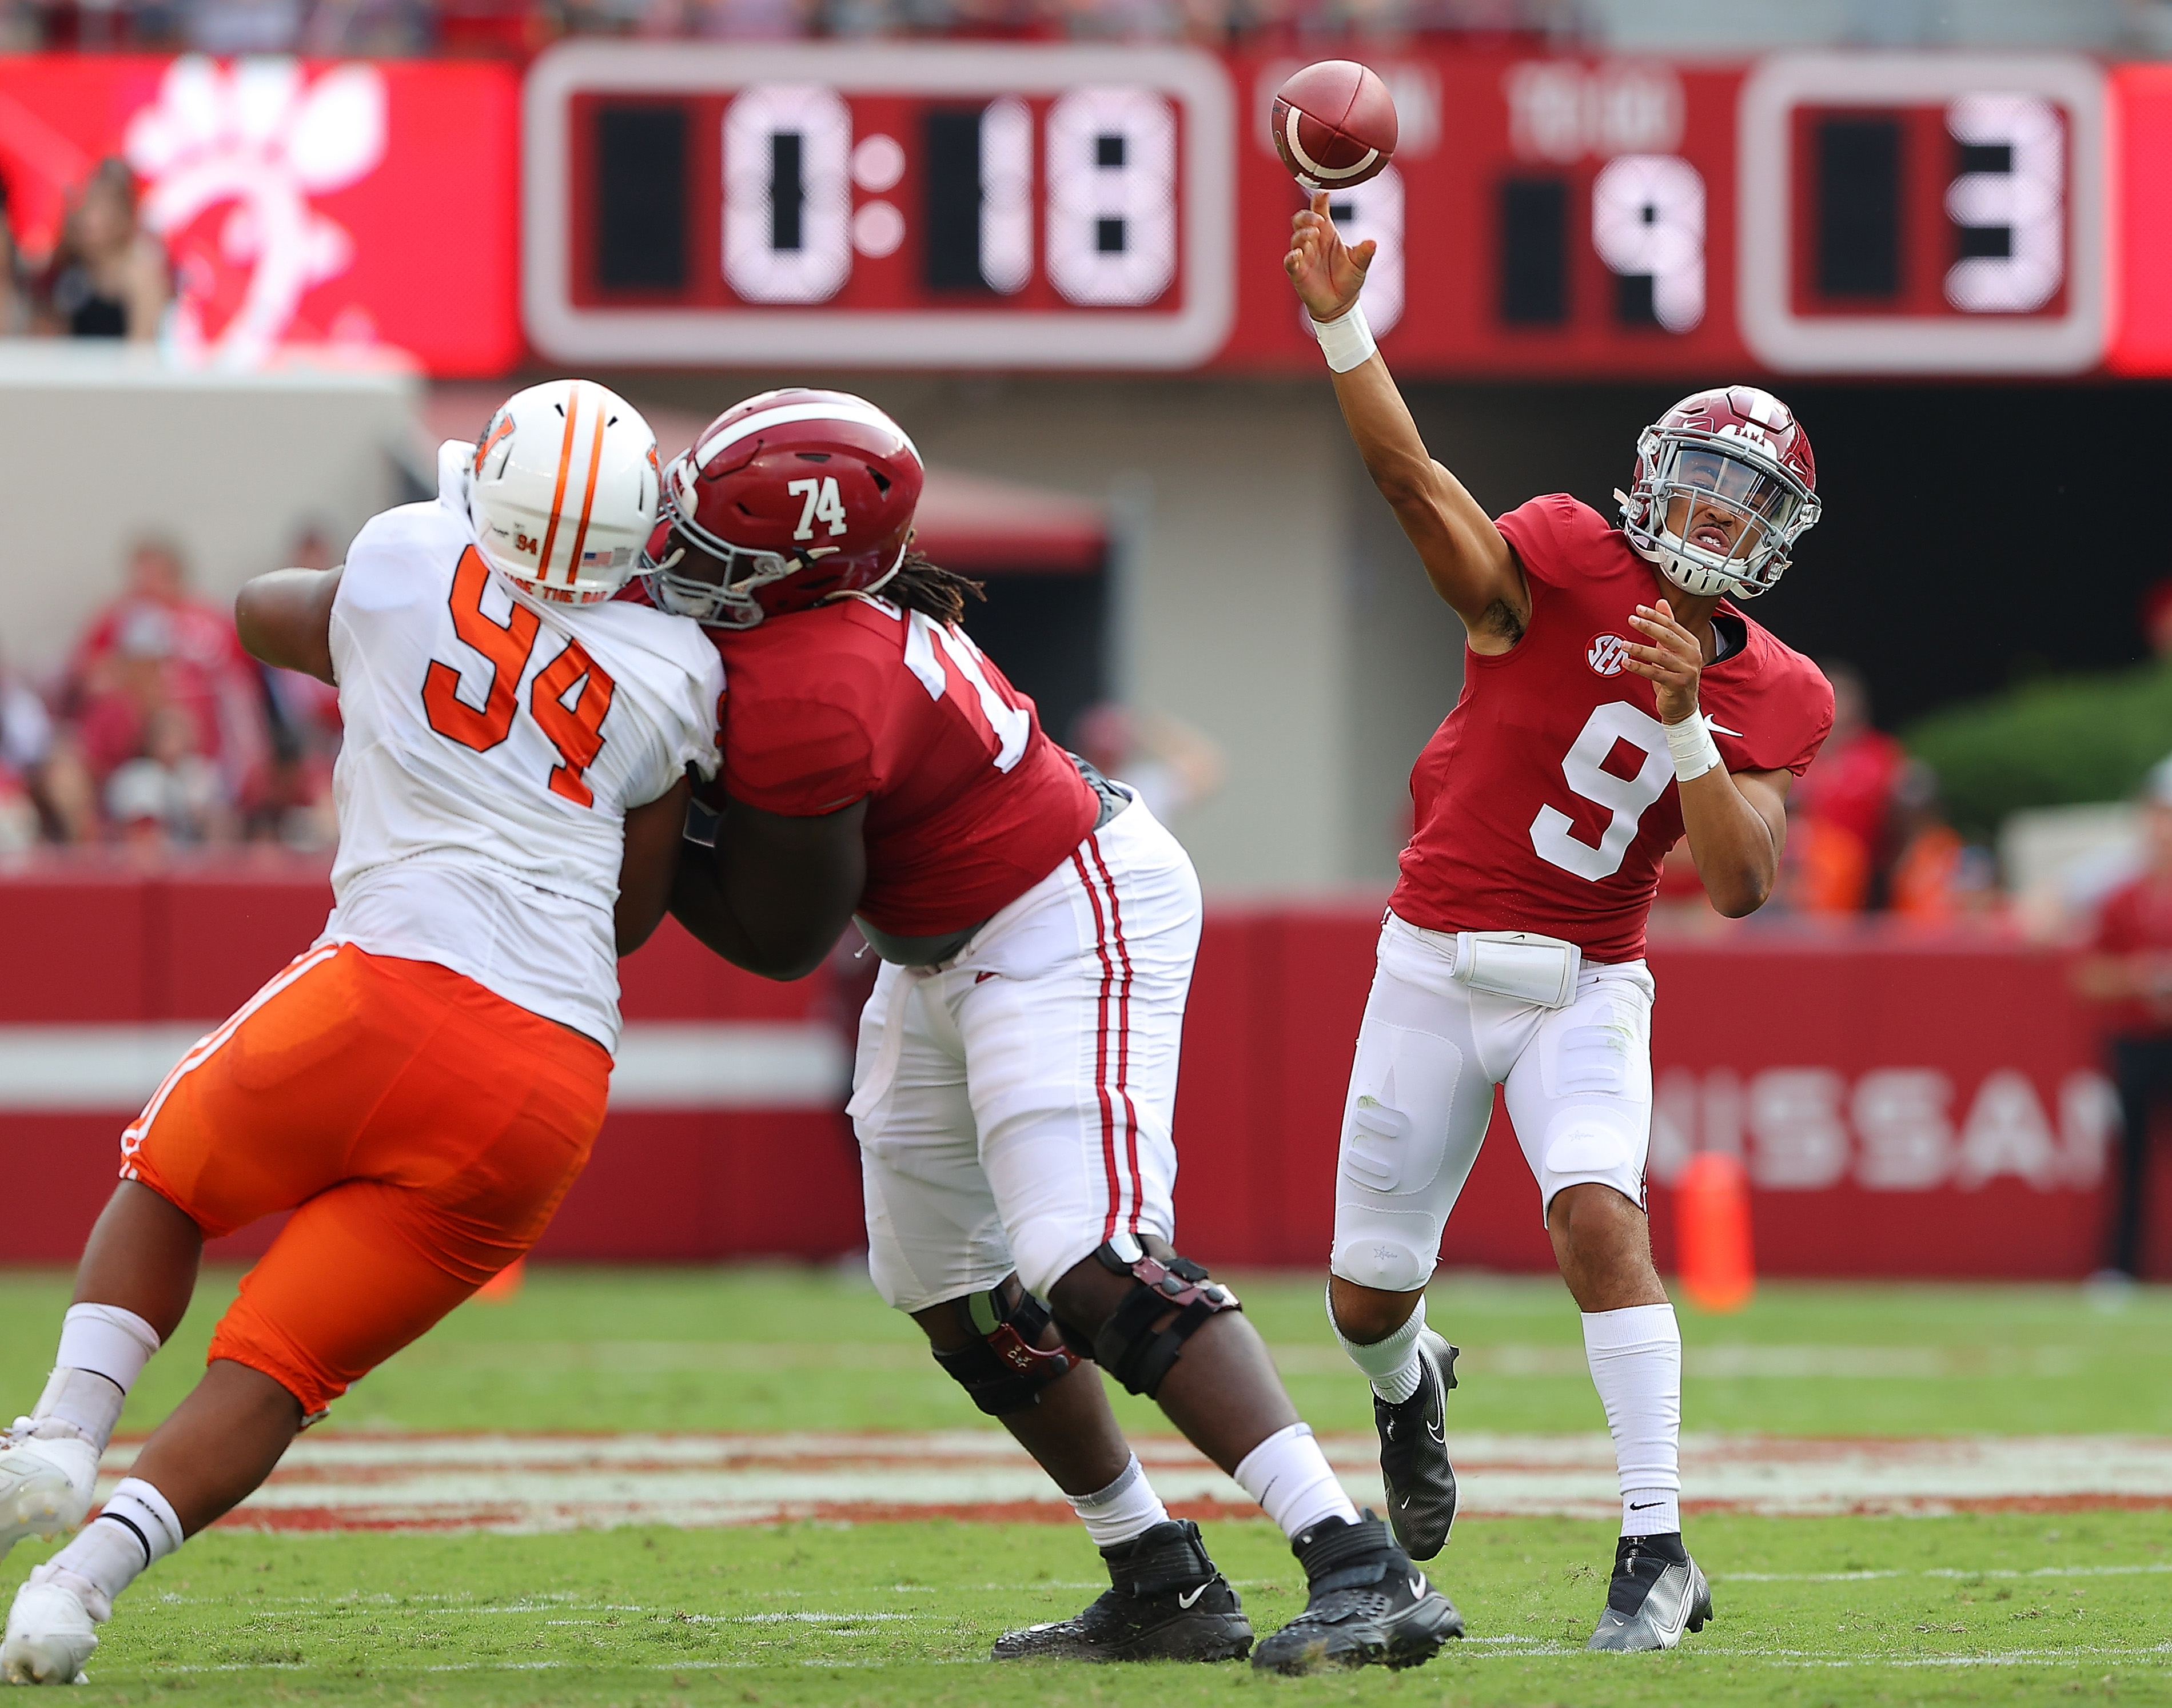 Bryce Young of the Alabama Crimson Tide passes against the Mercer Bears during the first half at Bryant-Denny Stadium on September 11, 2021 in Tuscaloosa, Alabama.